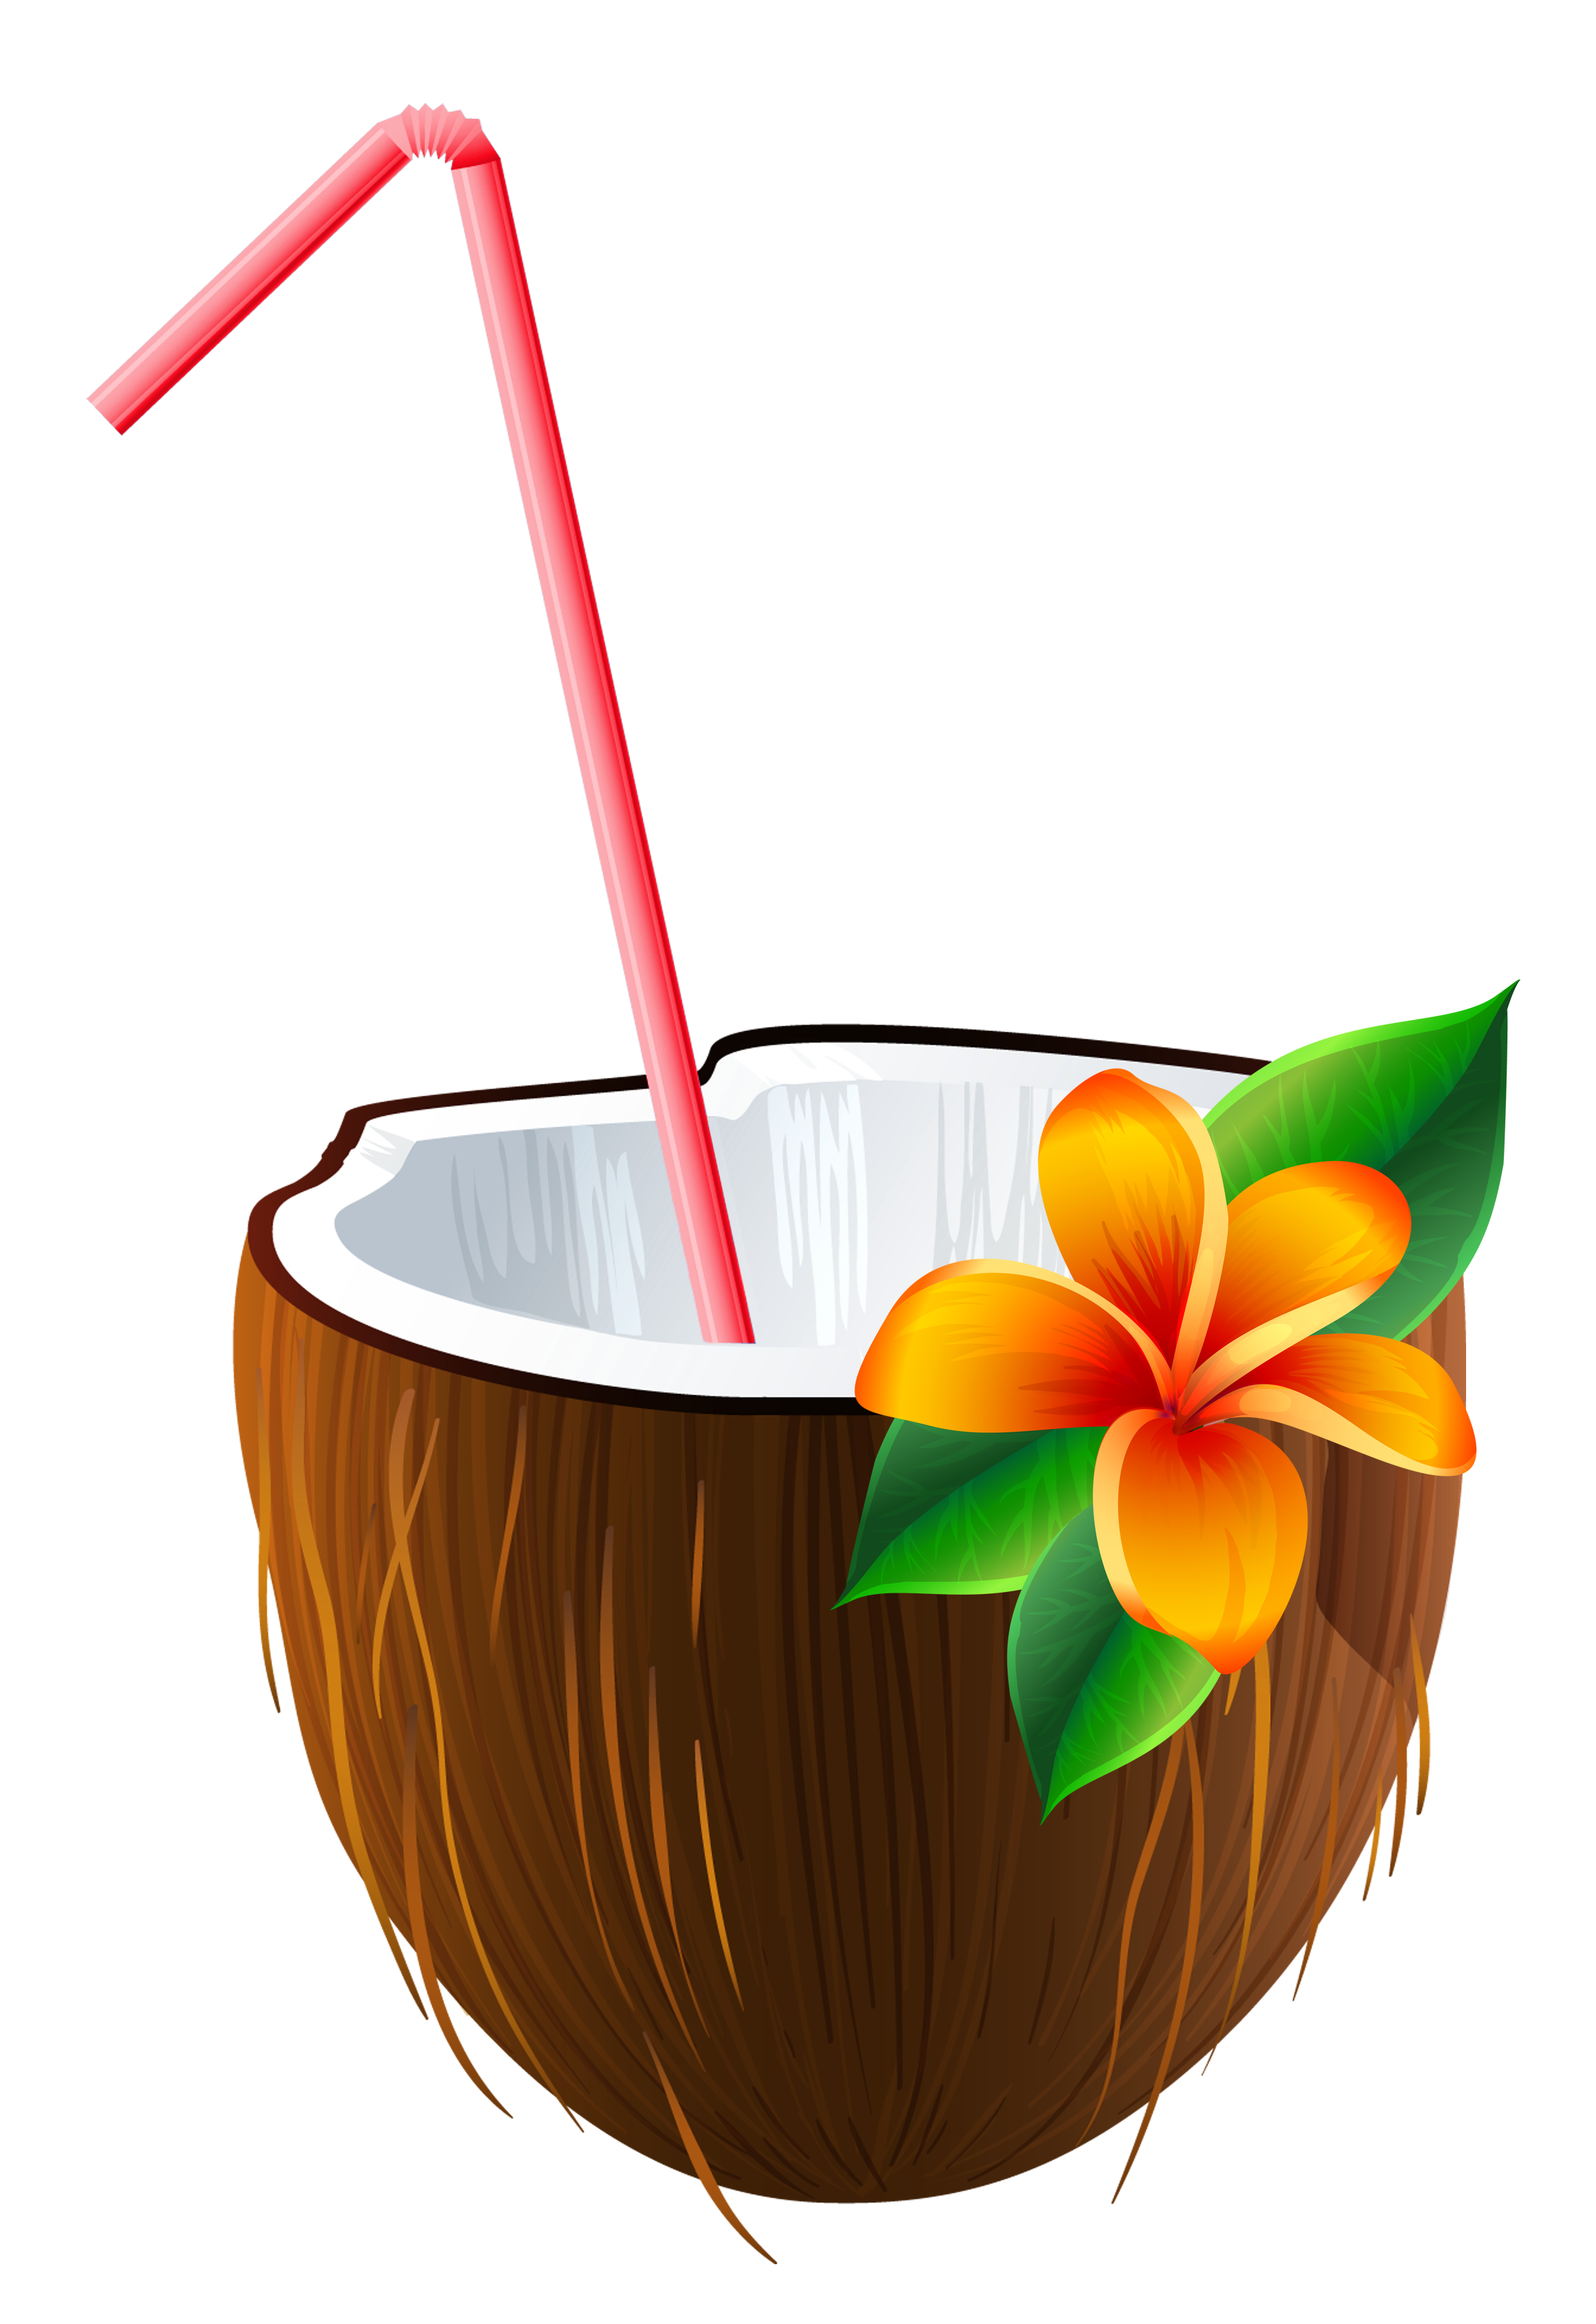 Cocktail clipart coconut. Exotic png image gallery